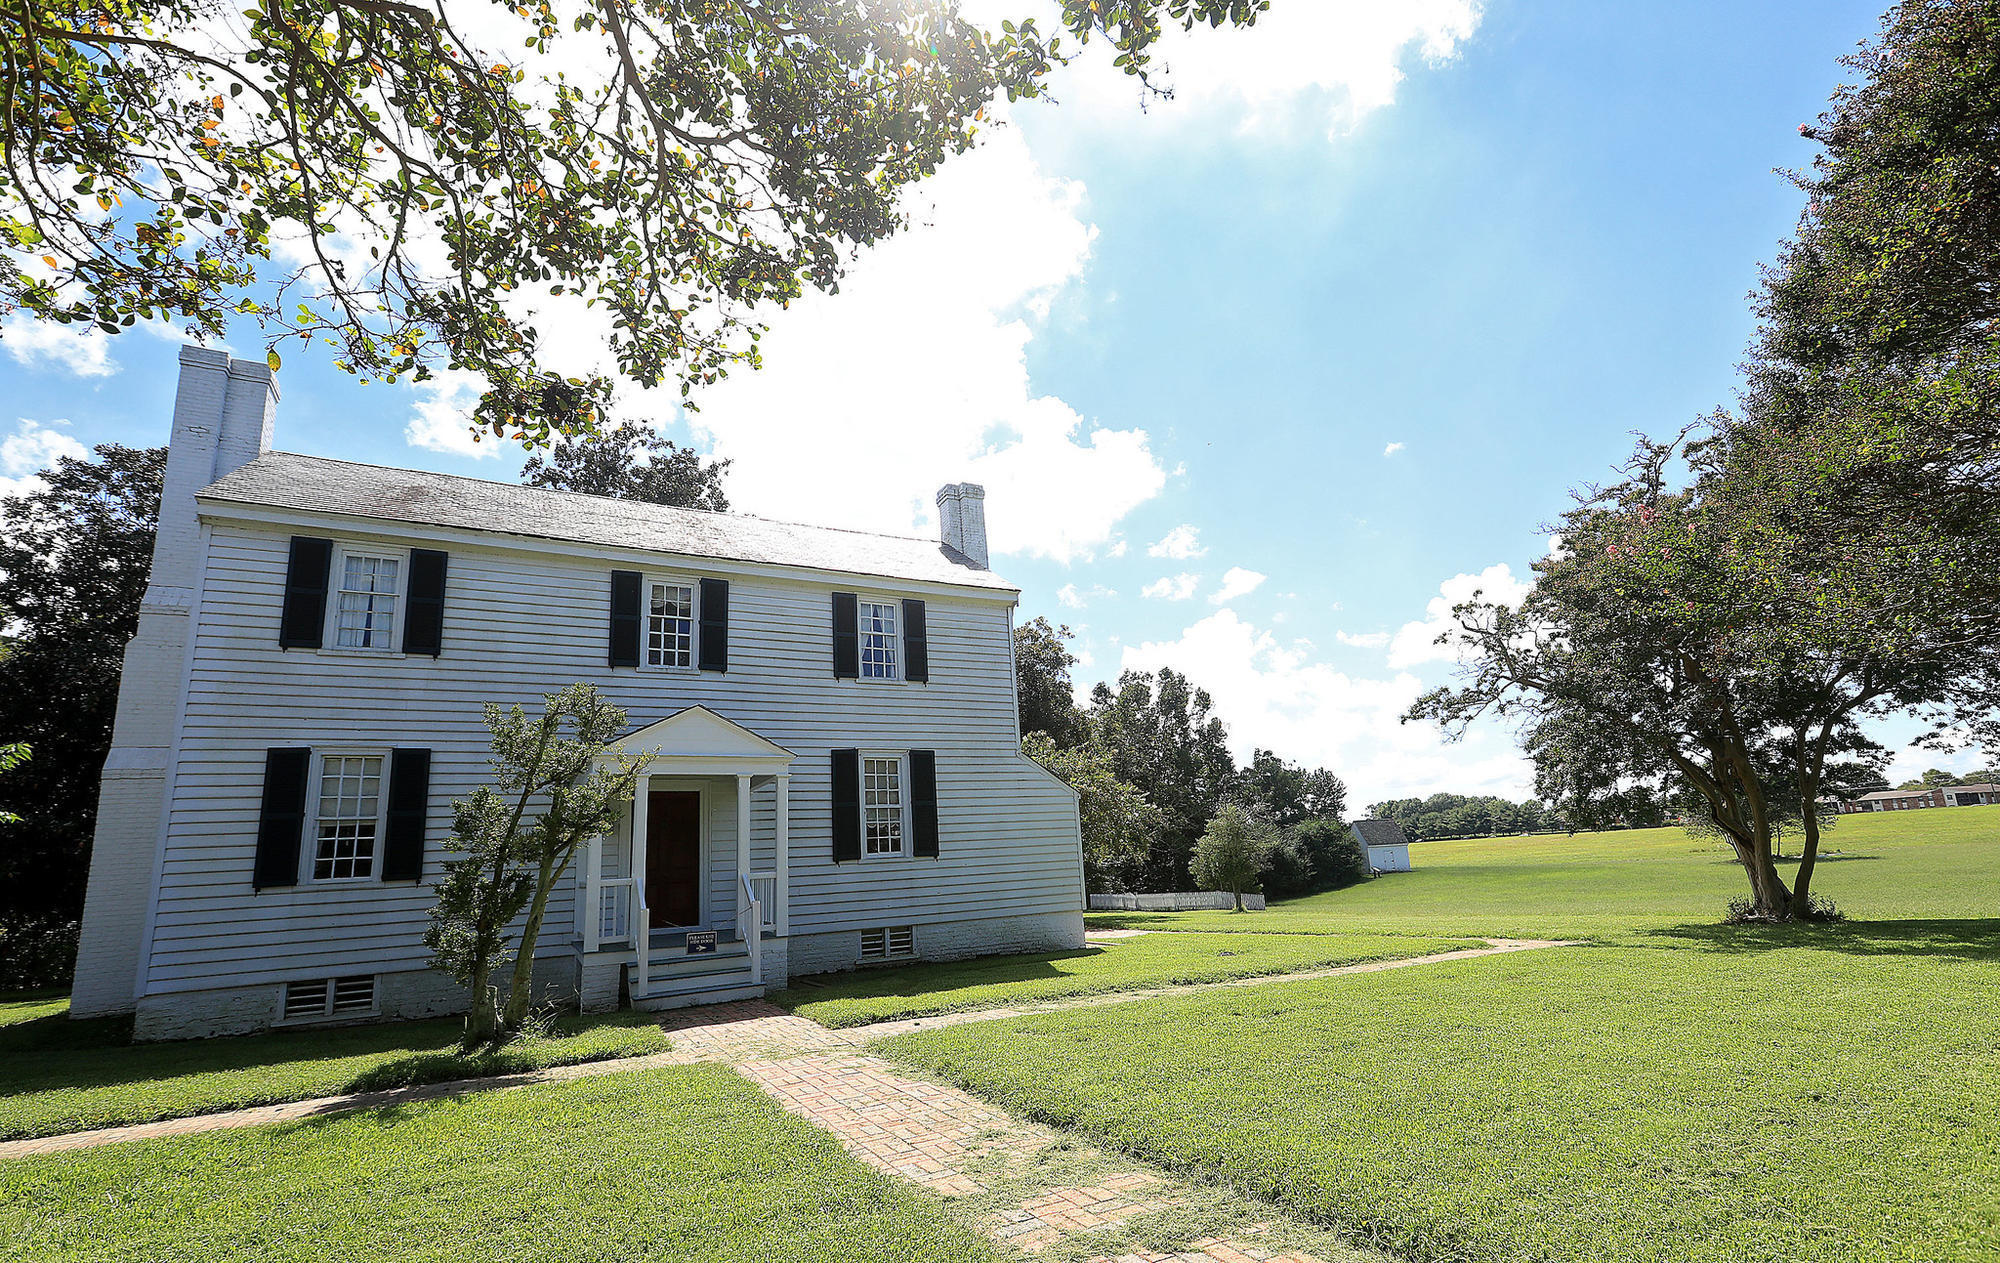 Newport News Revisiting Goal To Develop Land Around